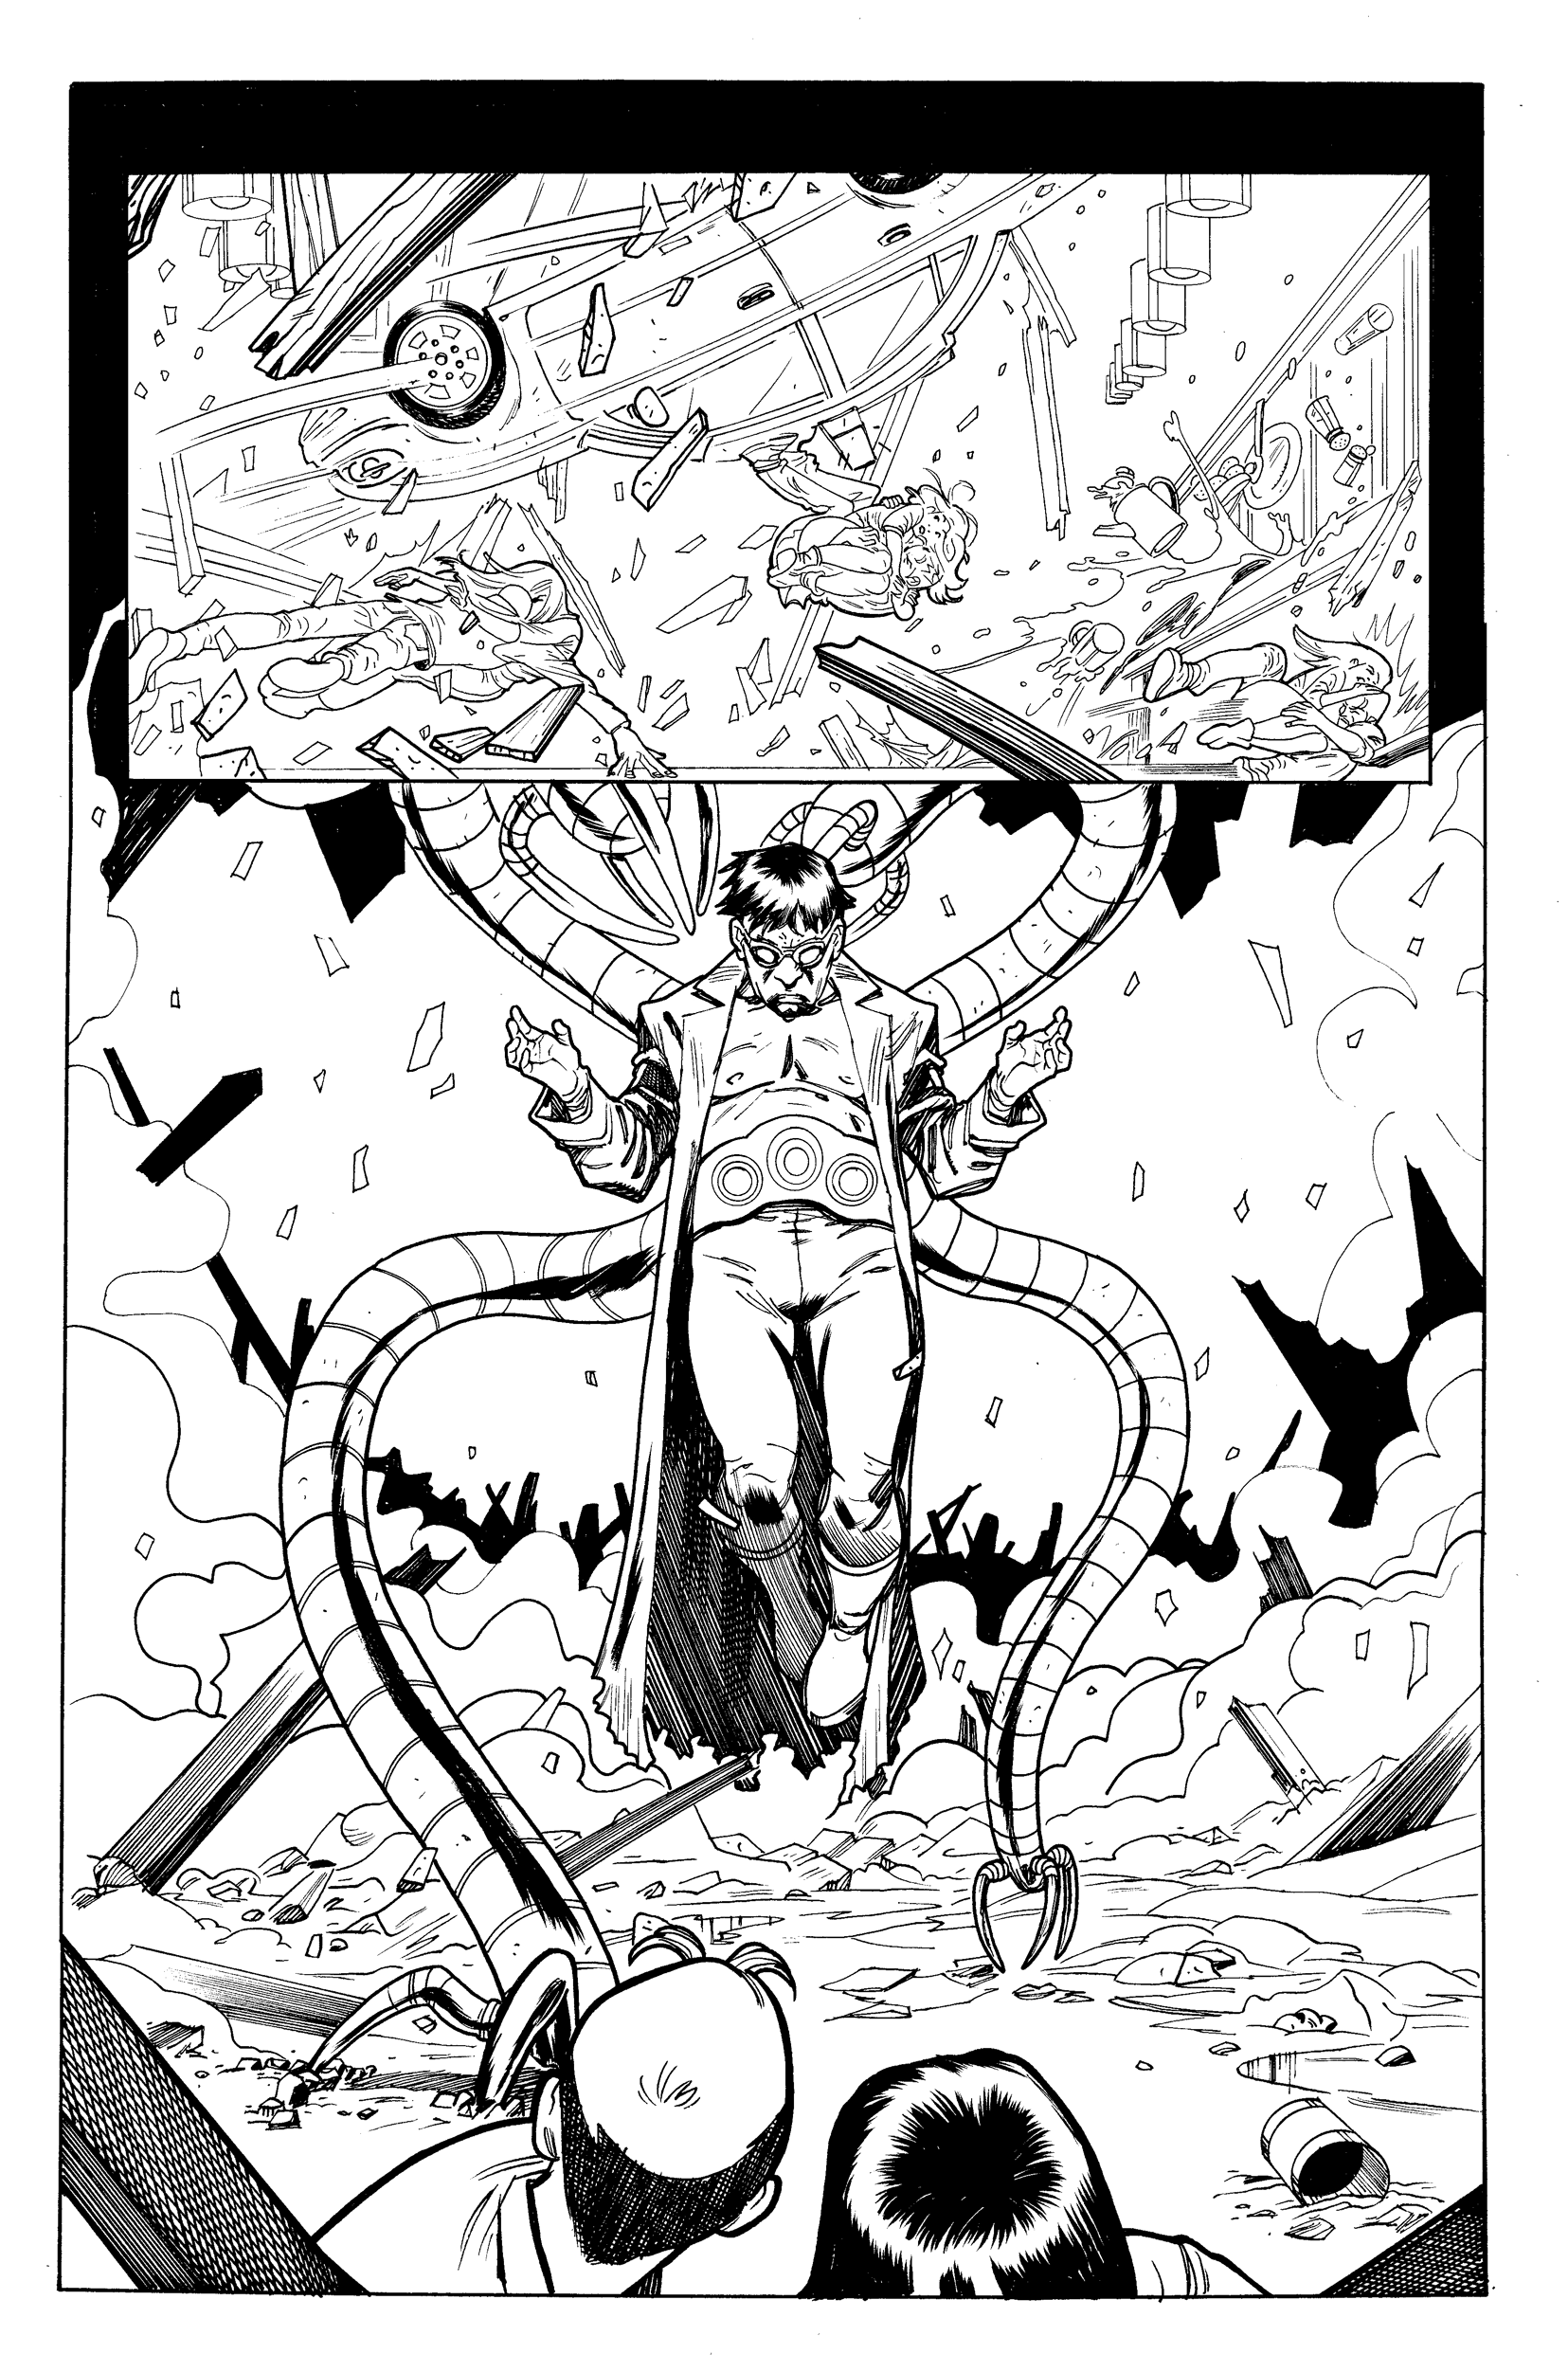 Spider-Man_Sequential-Art_Inks_04.png